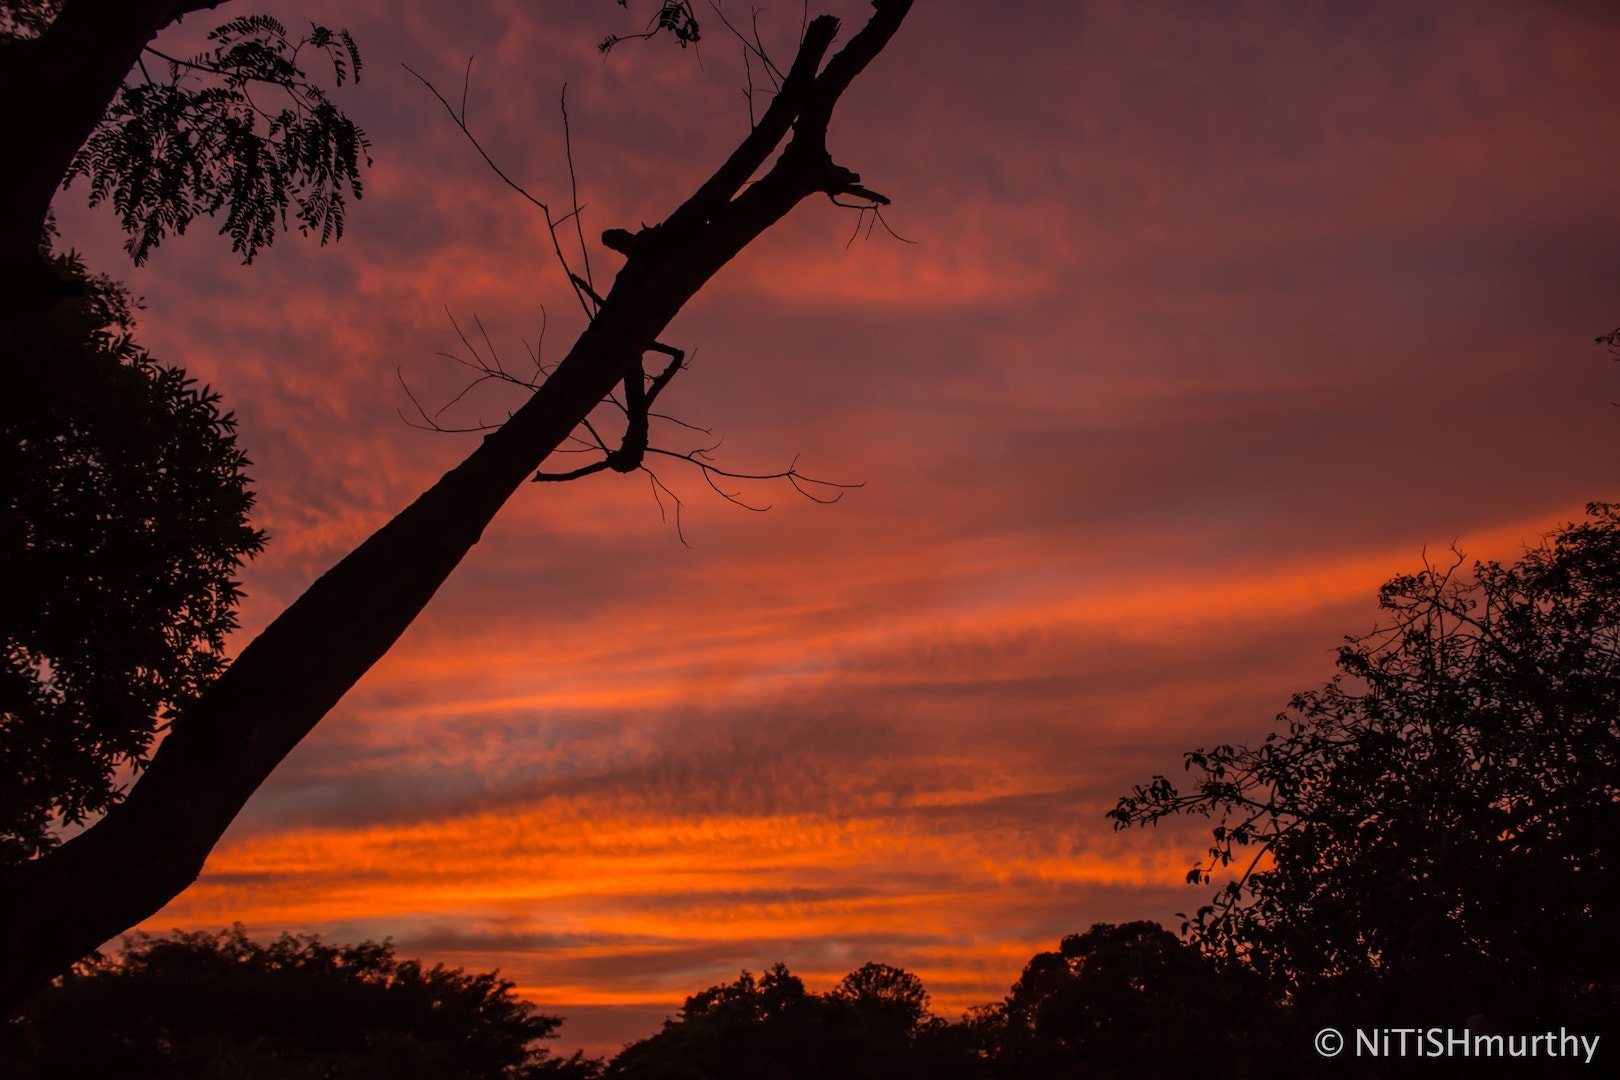 Photograph Fiery Sunset by Nitish Murthy on 500px